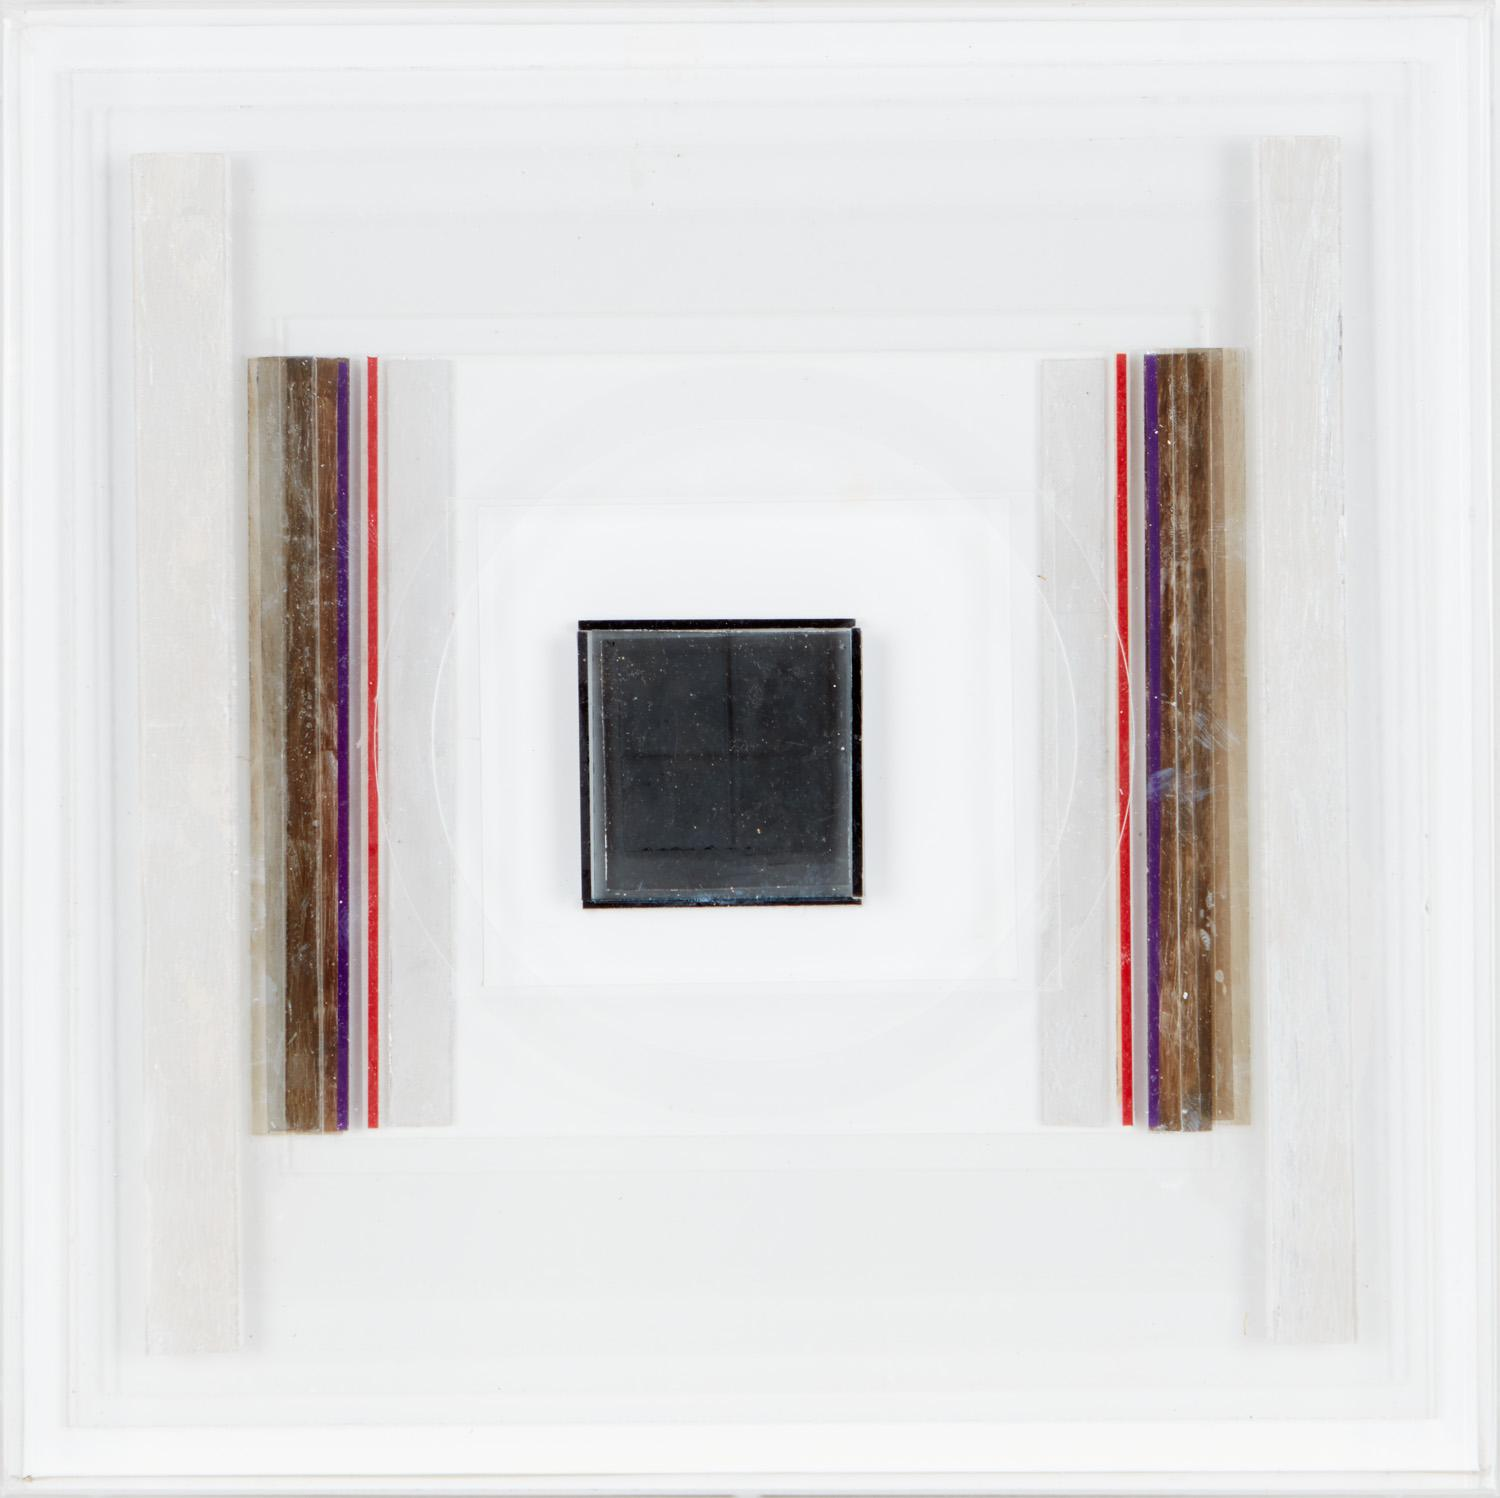 feiler-square-relief-lxiii-2012-perspex-40-x-40-cm contemporary british art